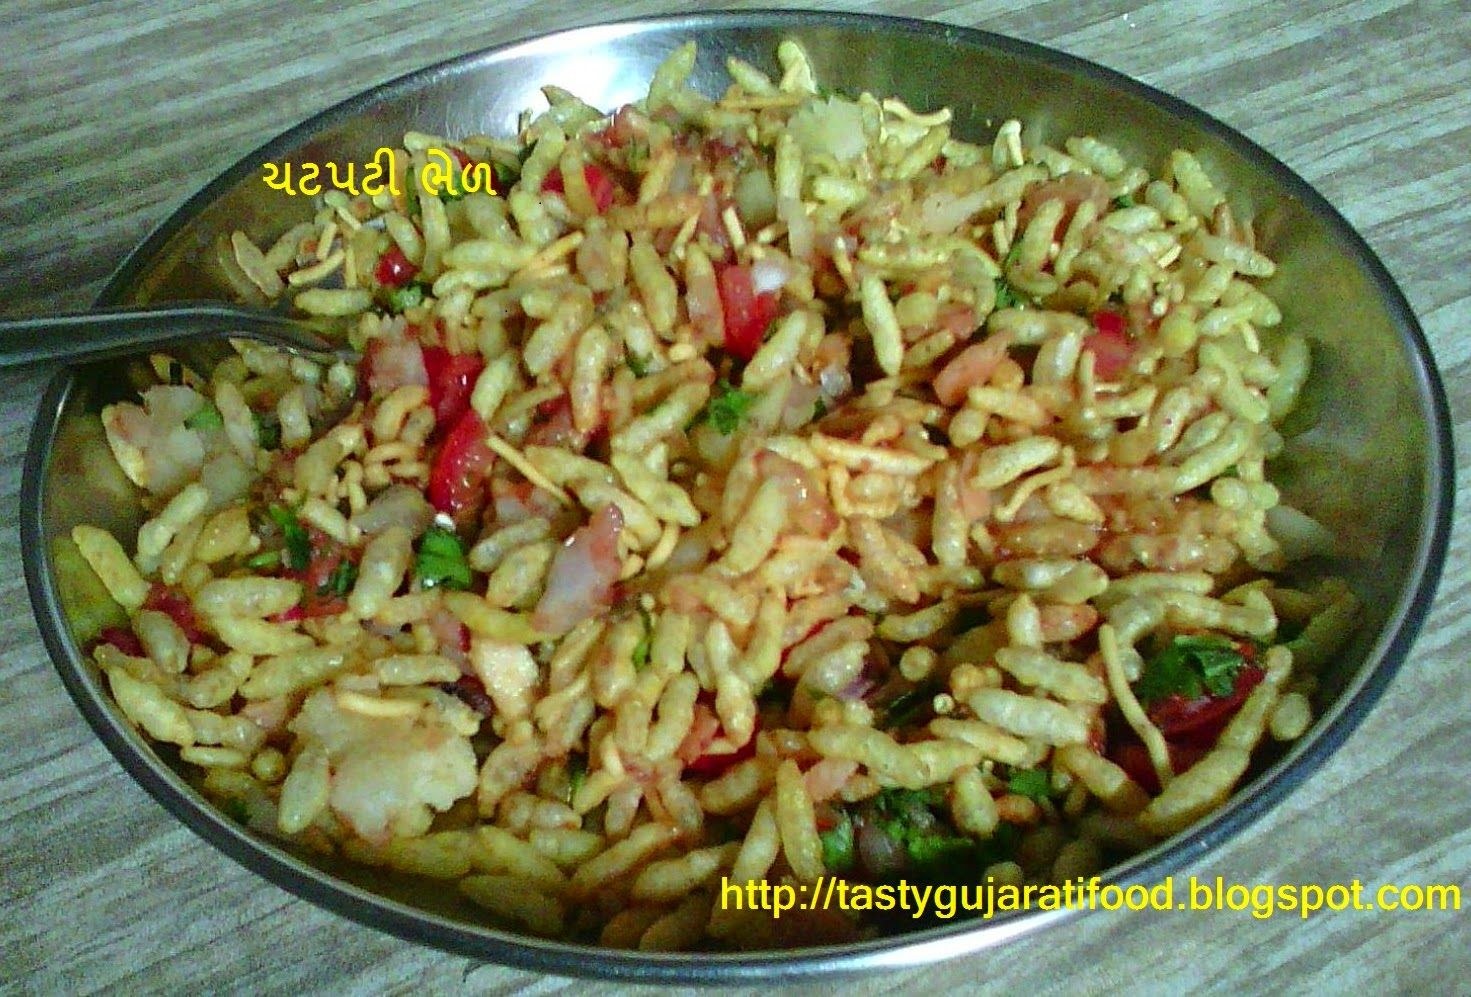 Chatpati mamra ni bhel recipe in gujarati language recipes to cook chatpati mamra ni bhel recipe in gujarati language recipes to cook pinterest gujarati food tasty and snacks forumfinder Image collections